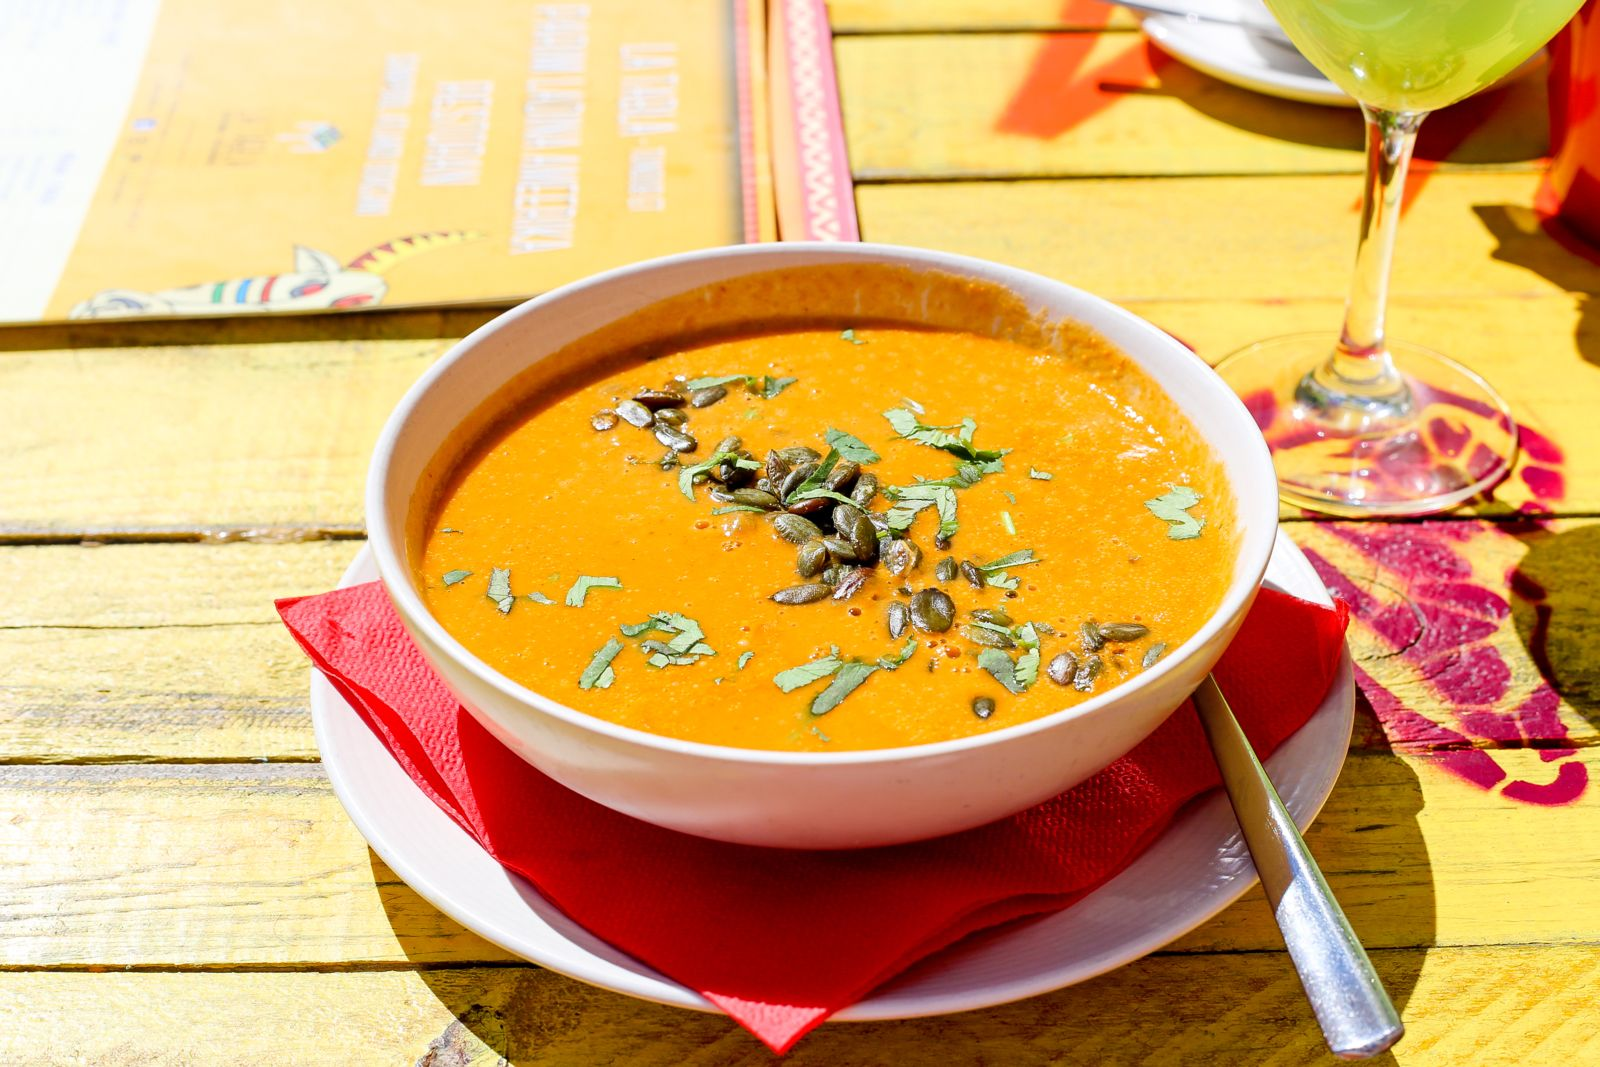 Squash soup is a healthful and delicious addition to your holiday menu